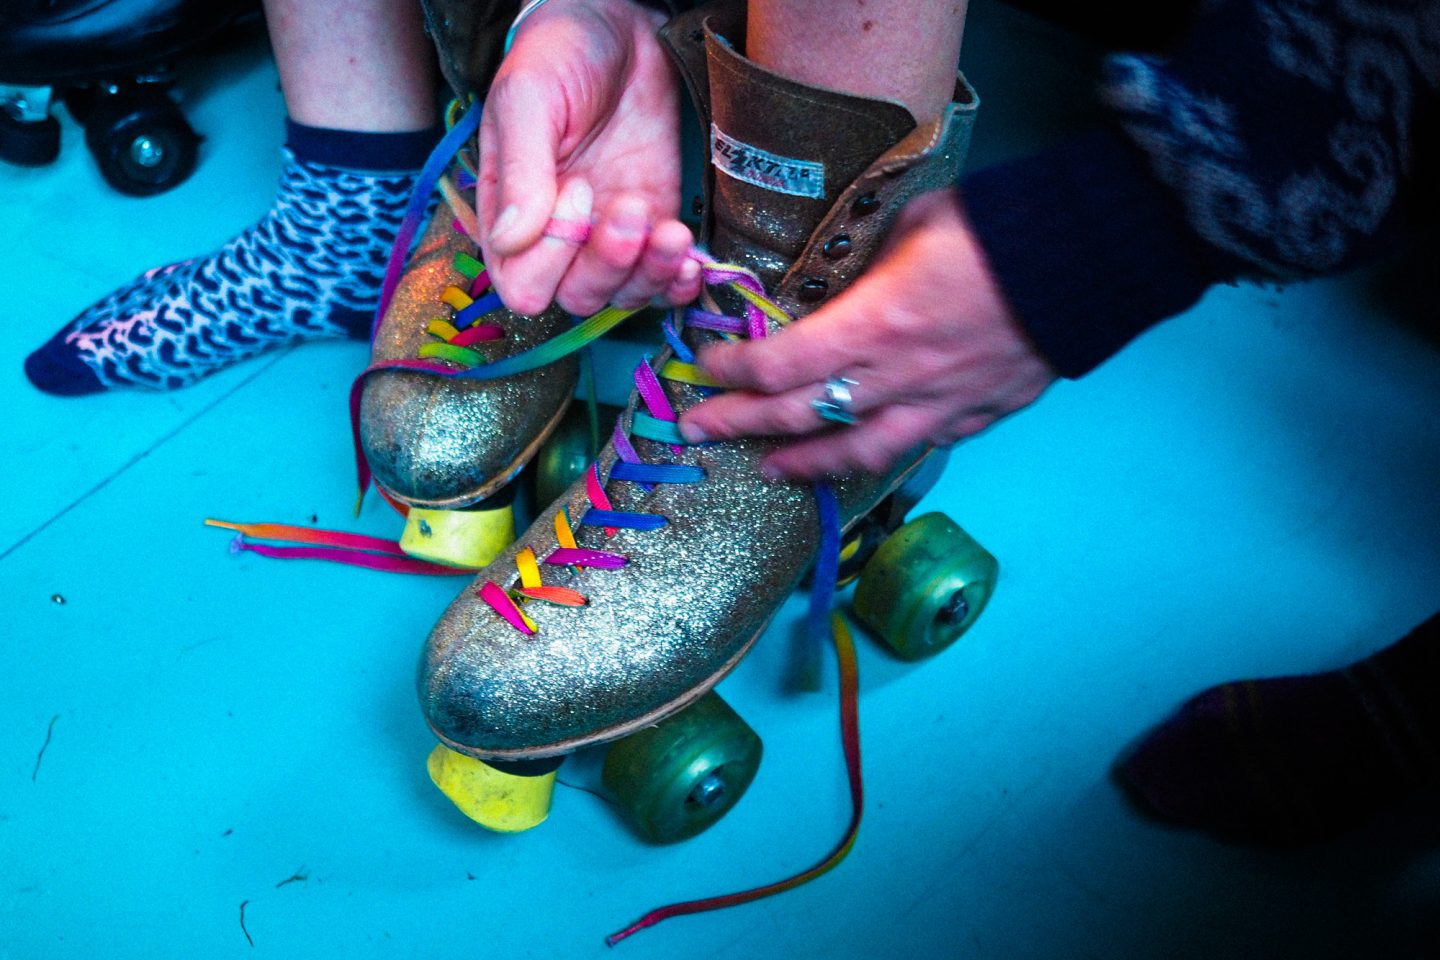 BUMP roller disco Bristol, Love Saves the Day festival, light up roller skates with rainbow laces